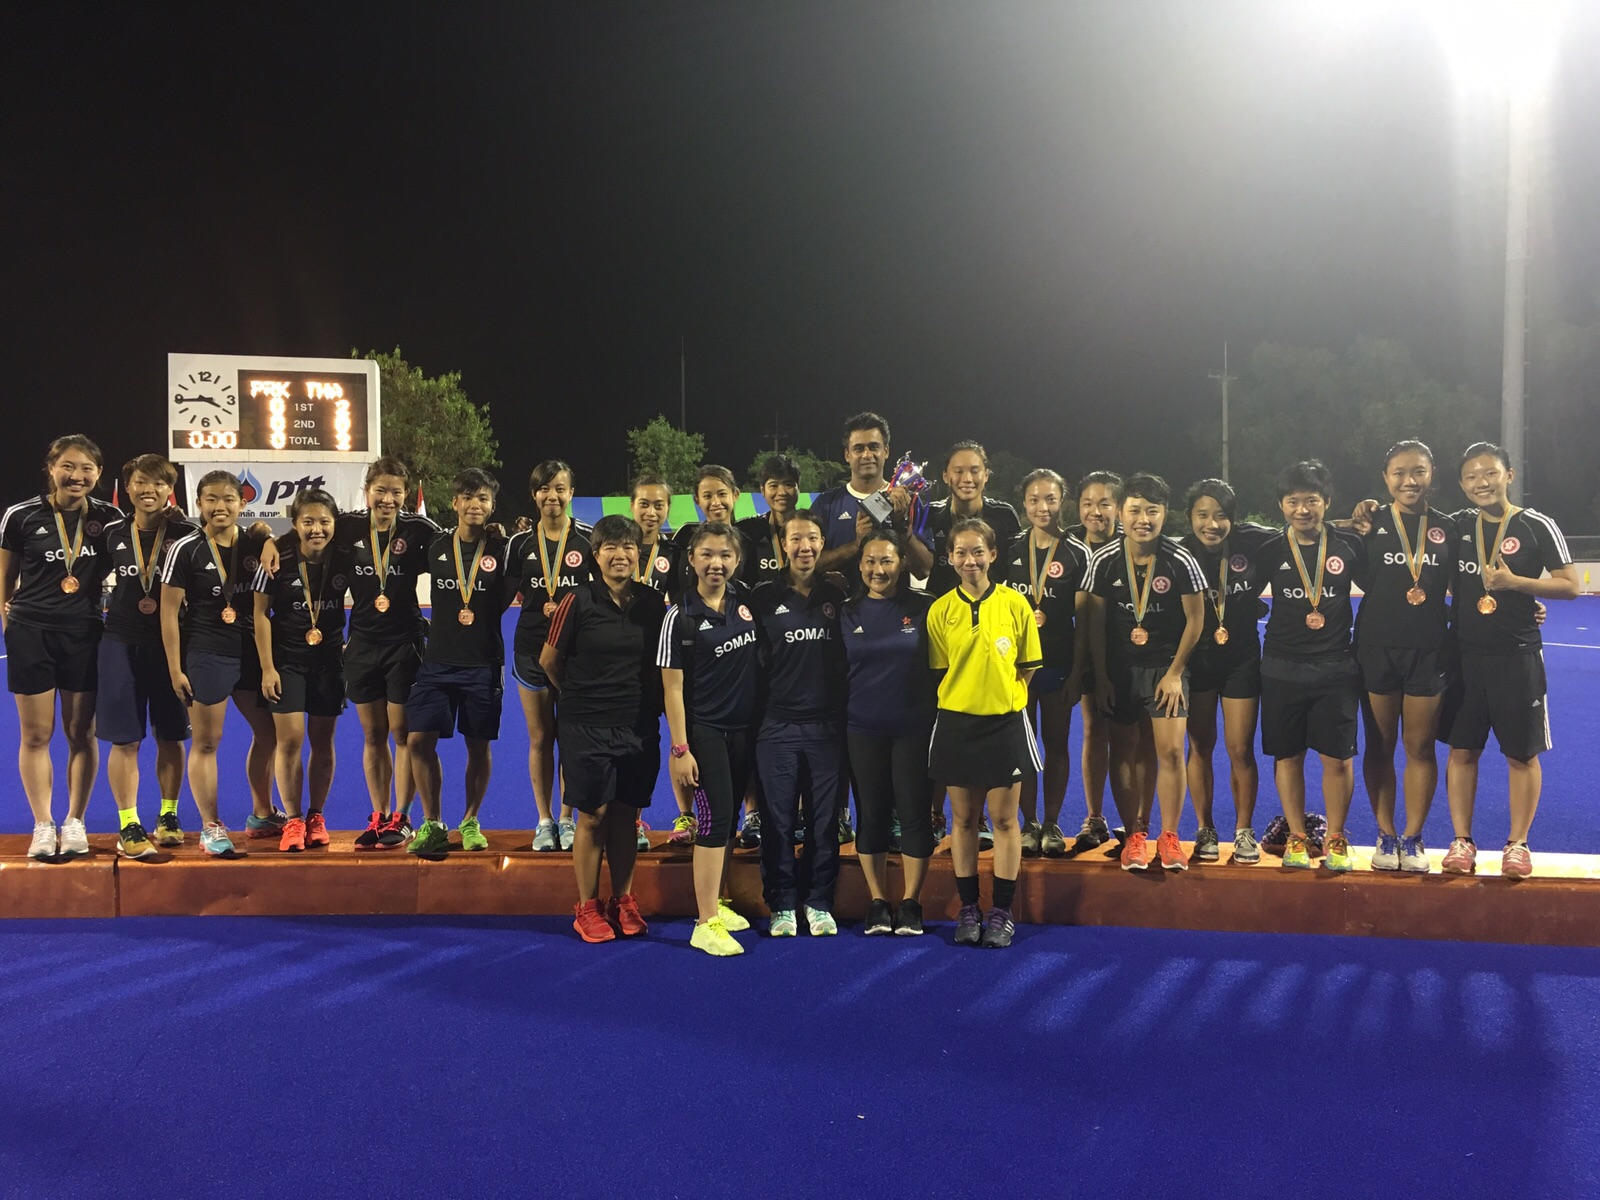 Hong Kong Women's National Squad winning Bronze Medal